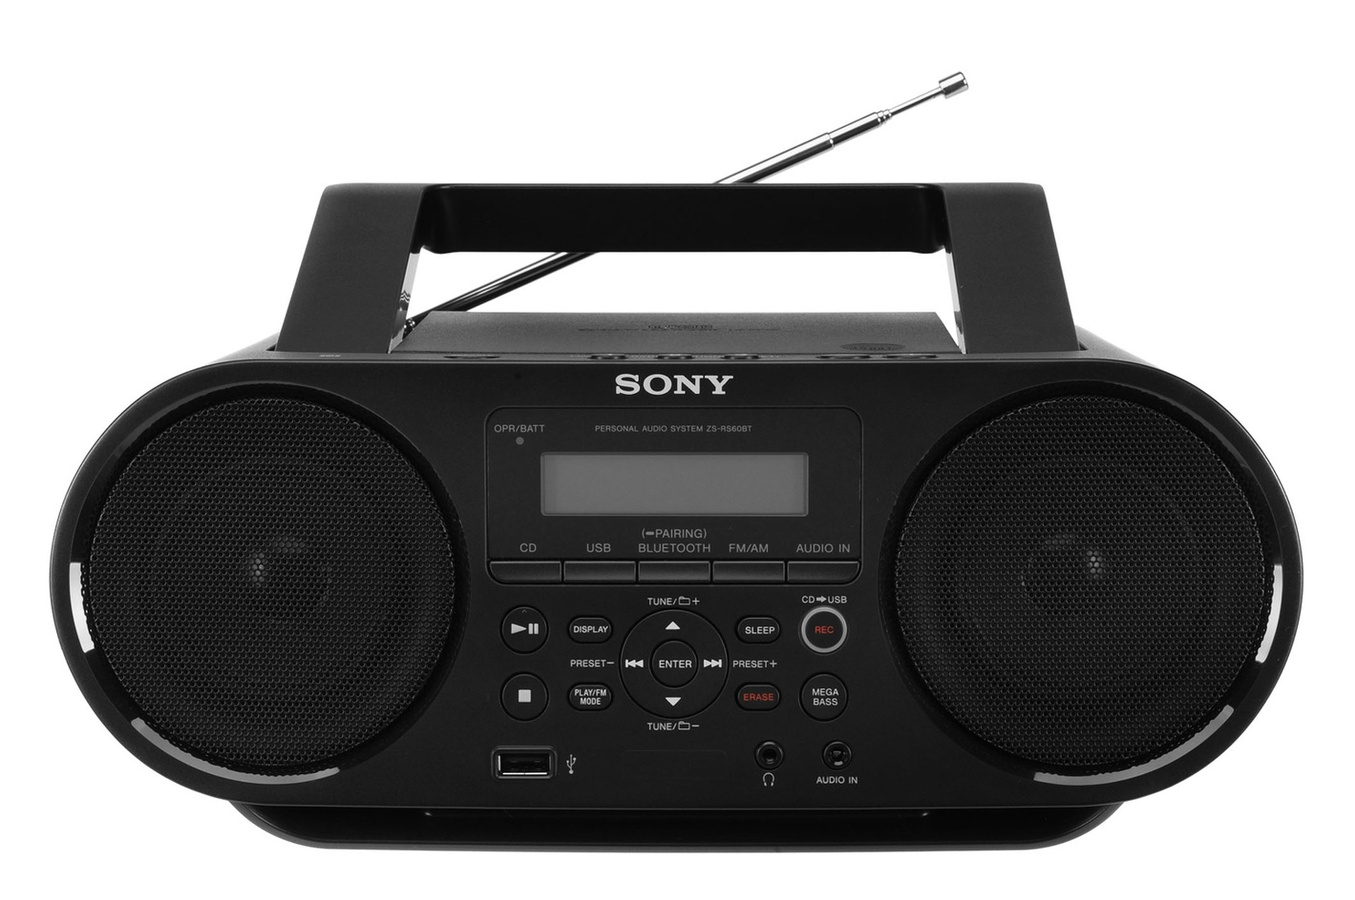 radios et lecteurs cd portables sony boombox cd avec bluetooth zs rs60bt pas cher. Black Bedroom Furniture Sets. Home Design Ideas